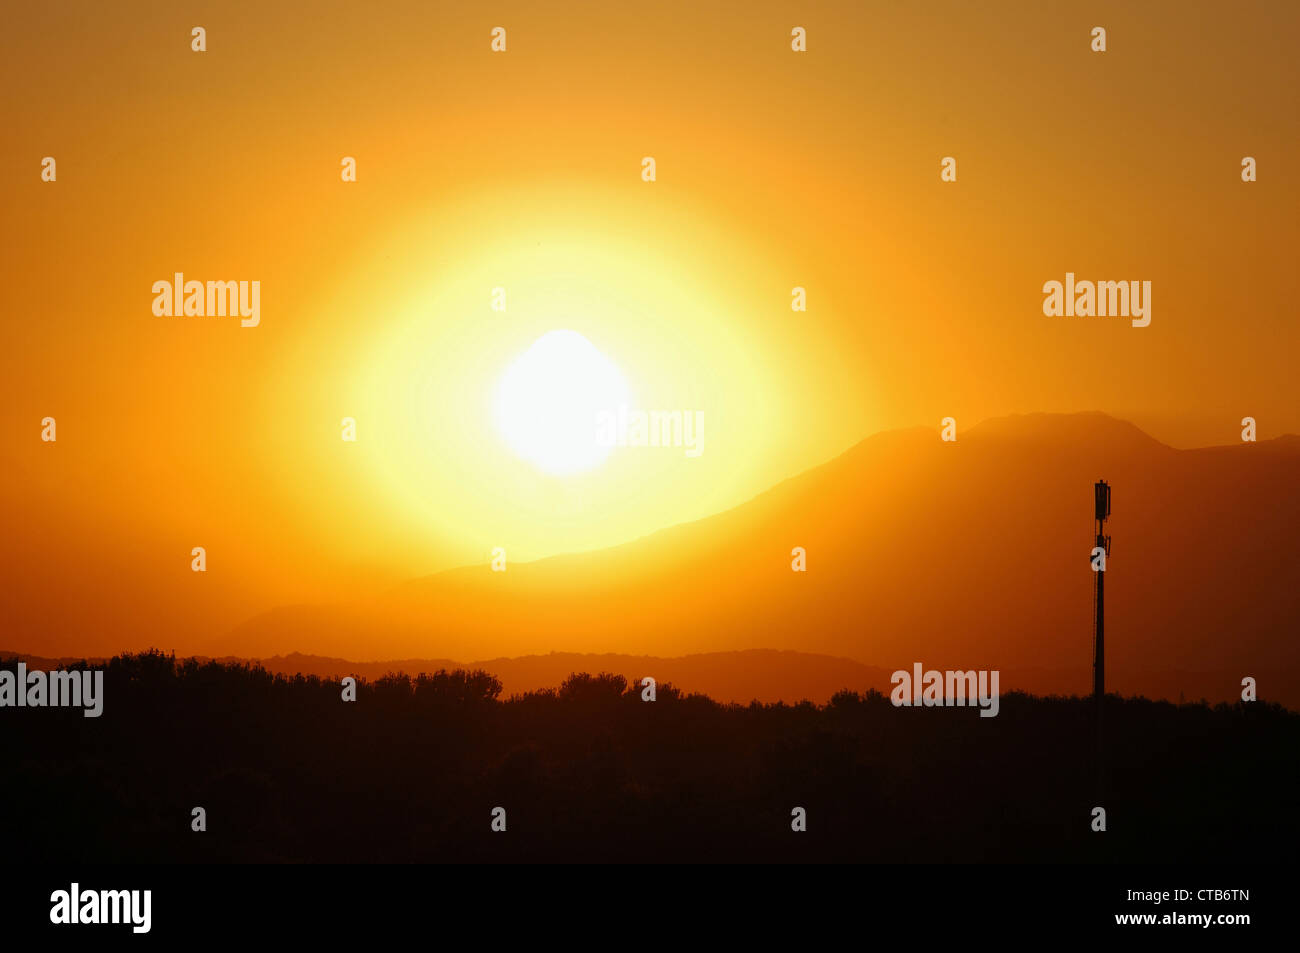 A telcom tower stands against the red sunset sky - Stock Image